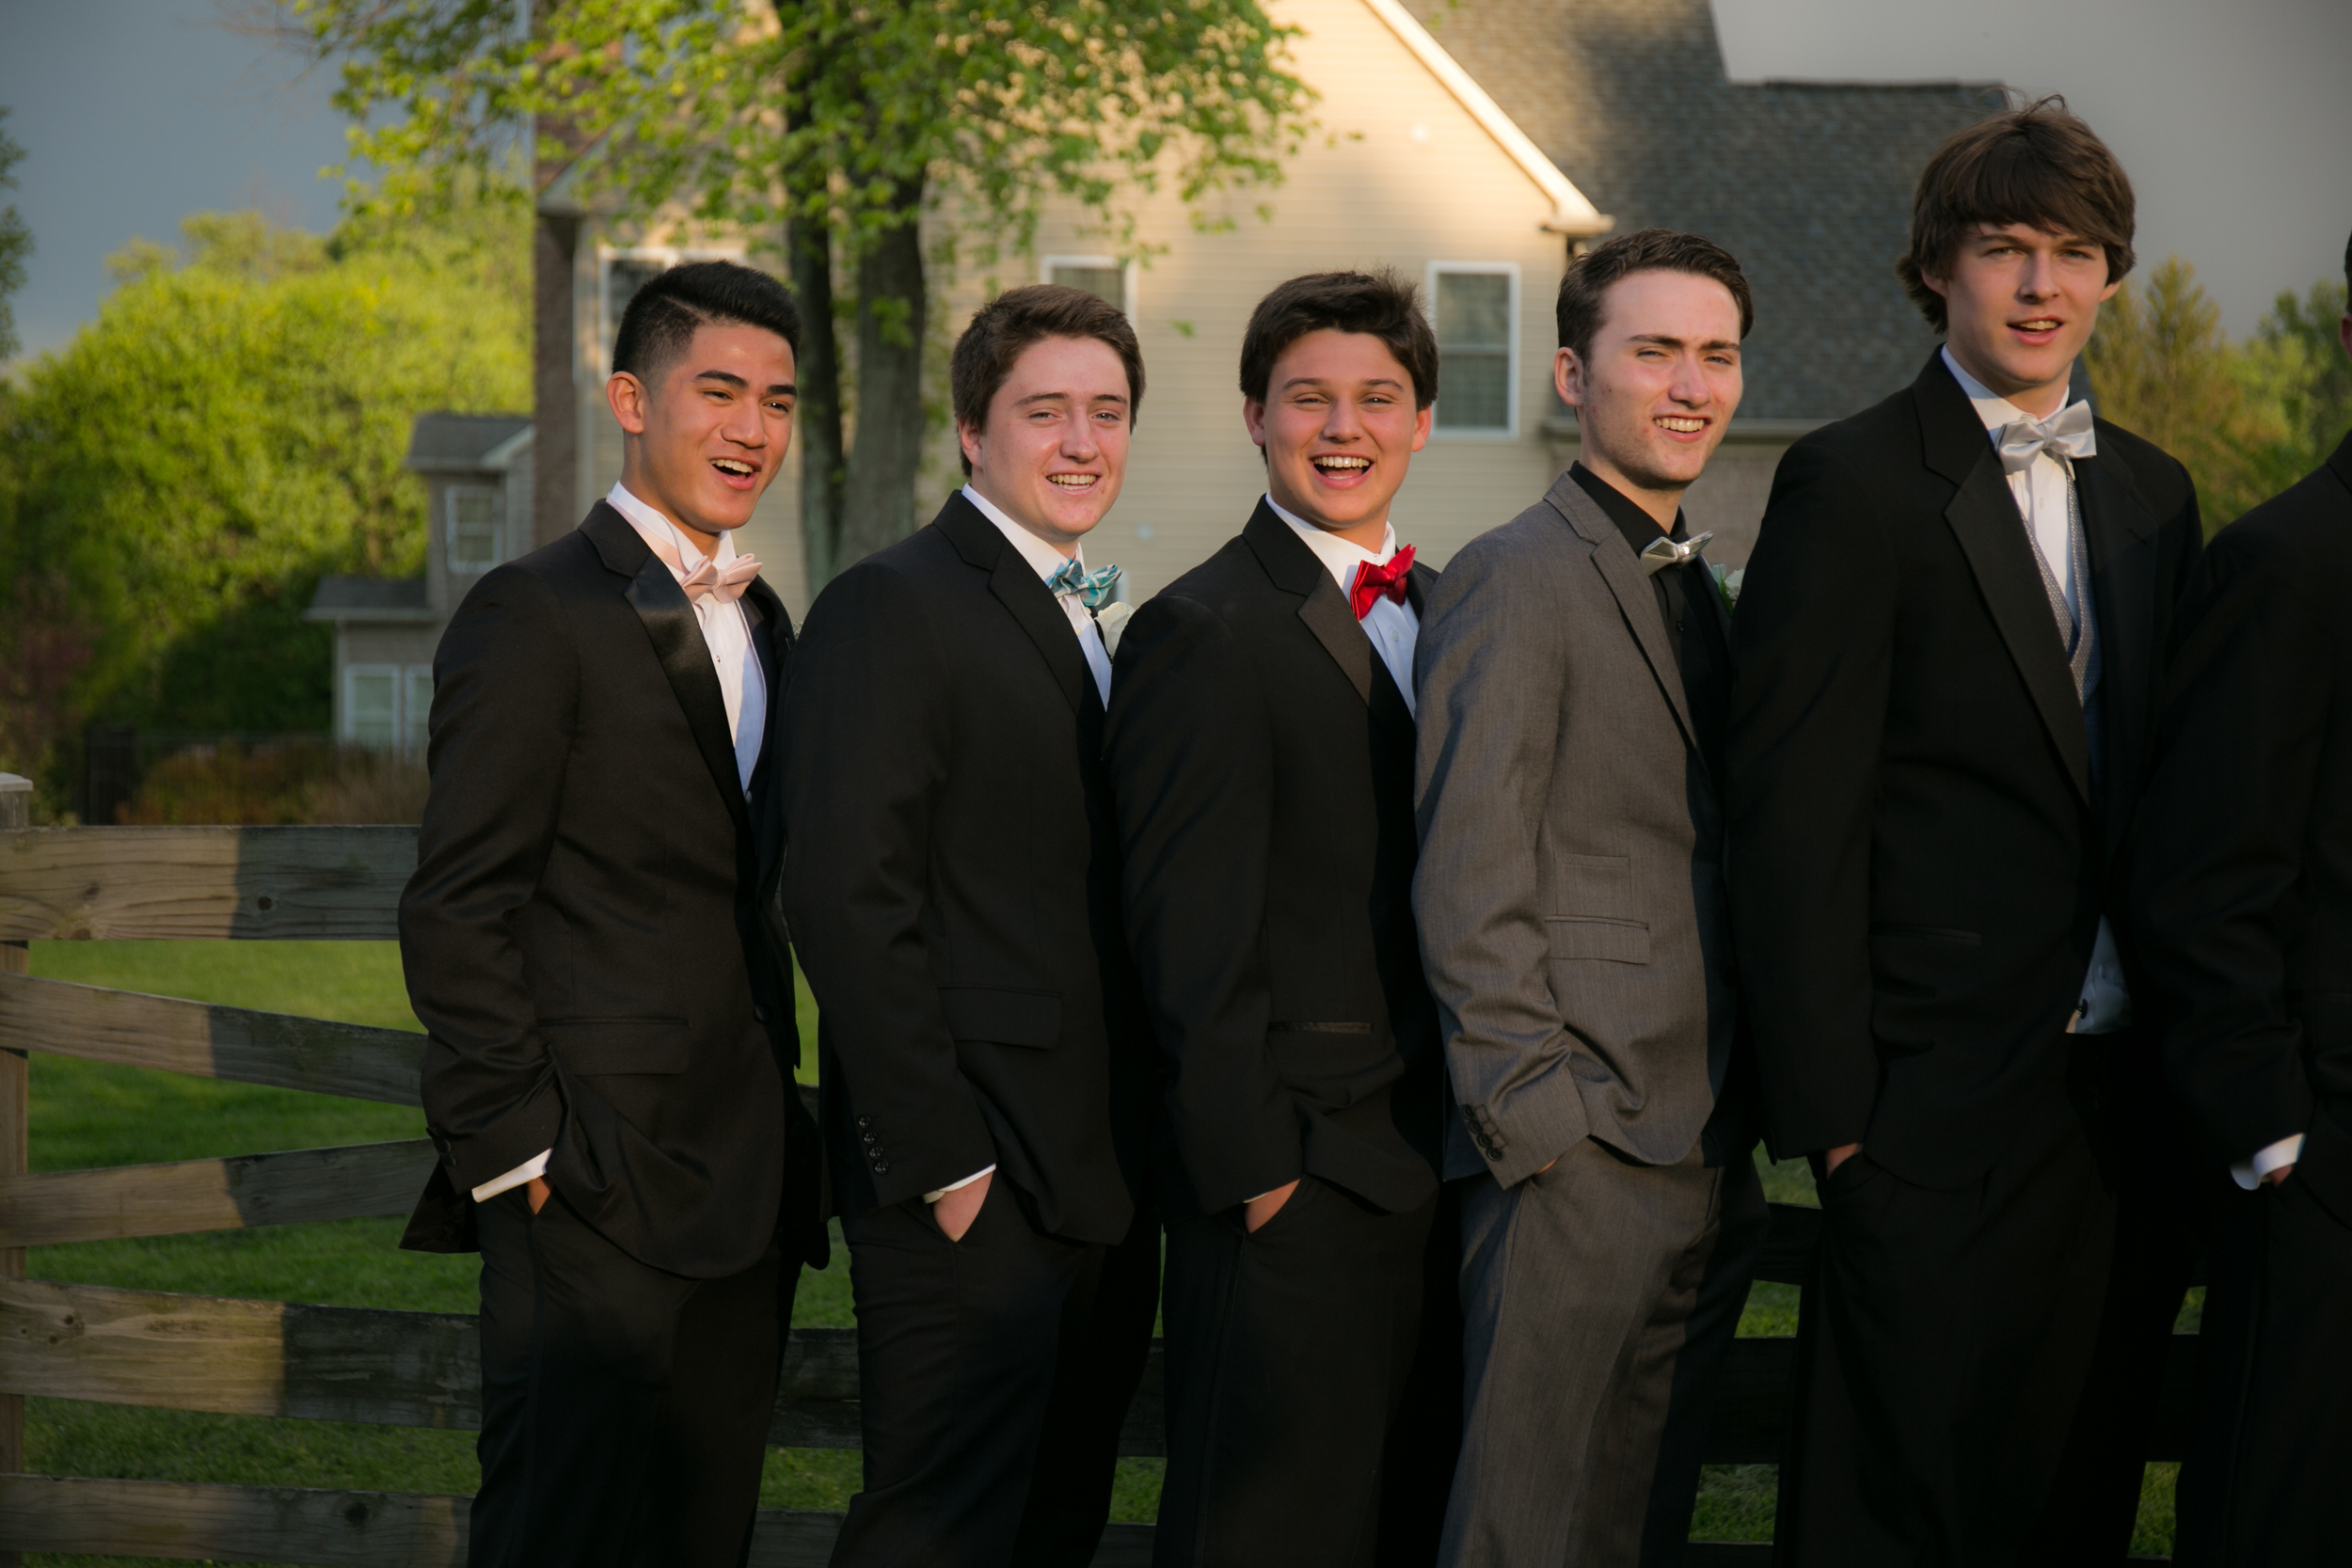 Mount-De-Sales-Pre-Prom-May-2014-62.jpg